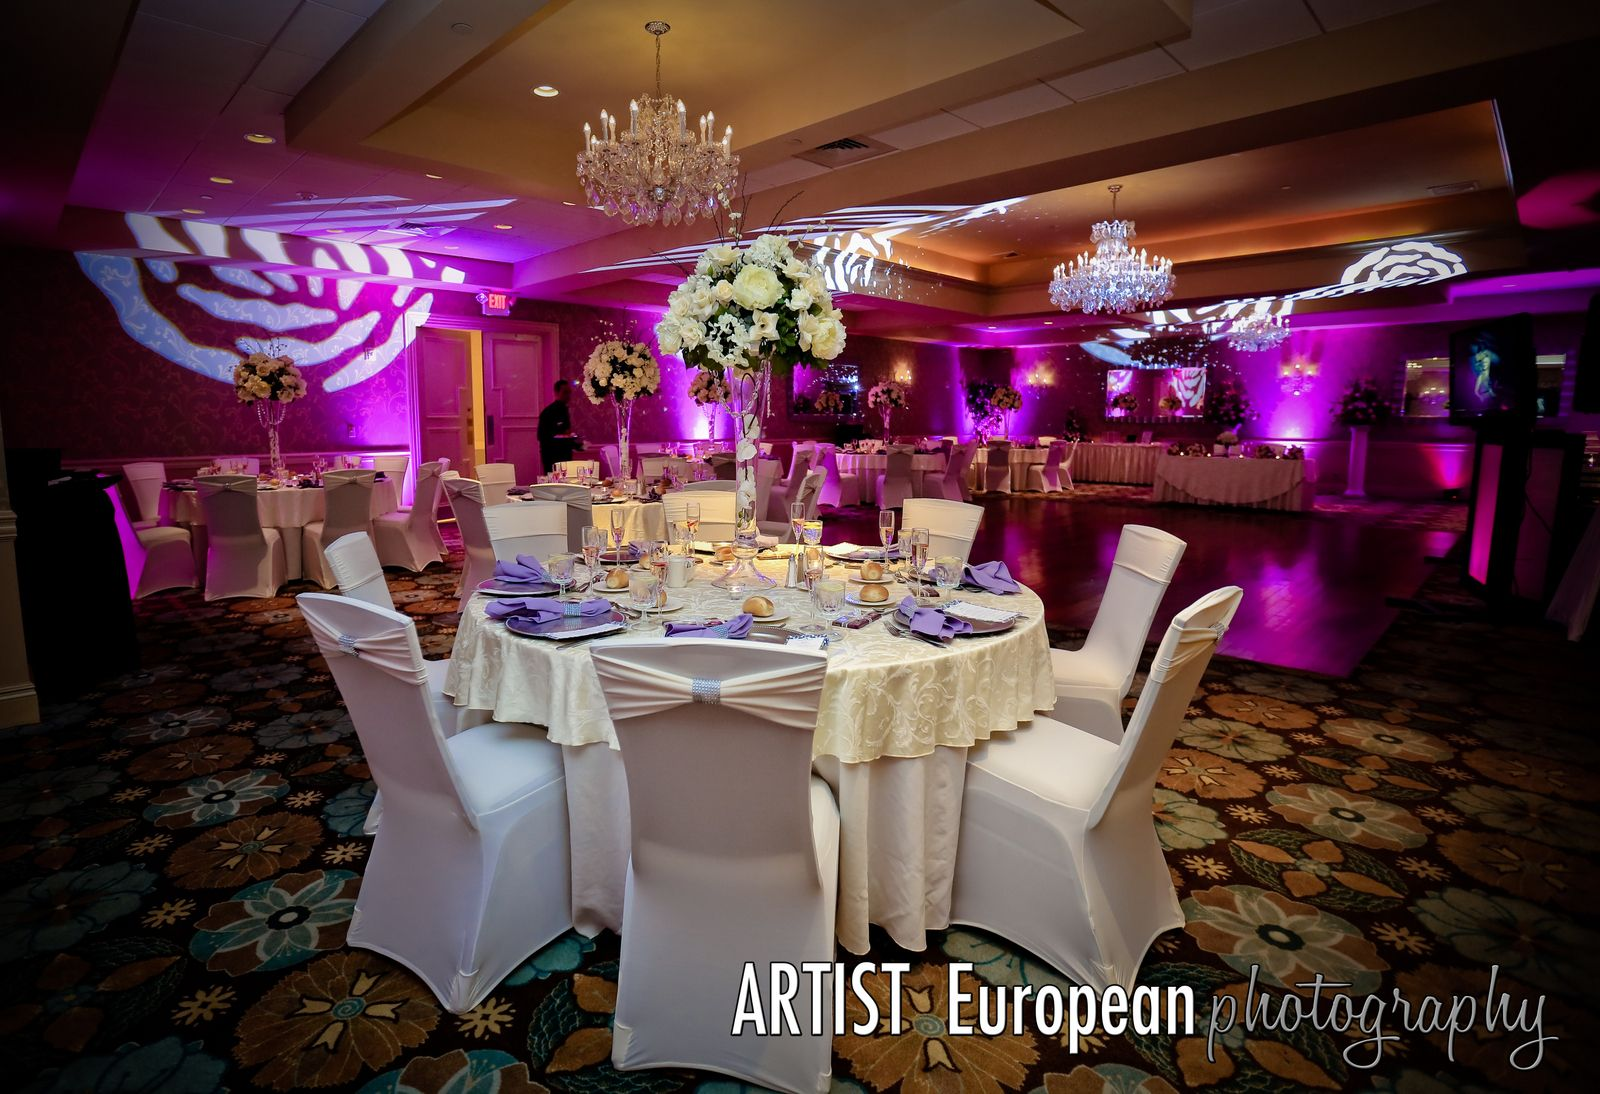 The Emerald Ballroom at the Radisson Freehold is the perfect wedding venue  for couples who want a more inmate recept… | Perfect wedding venue, Ballroom,  Nj weddings